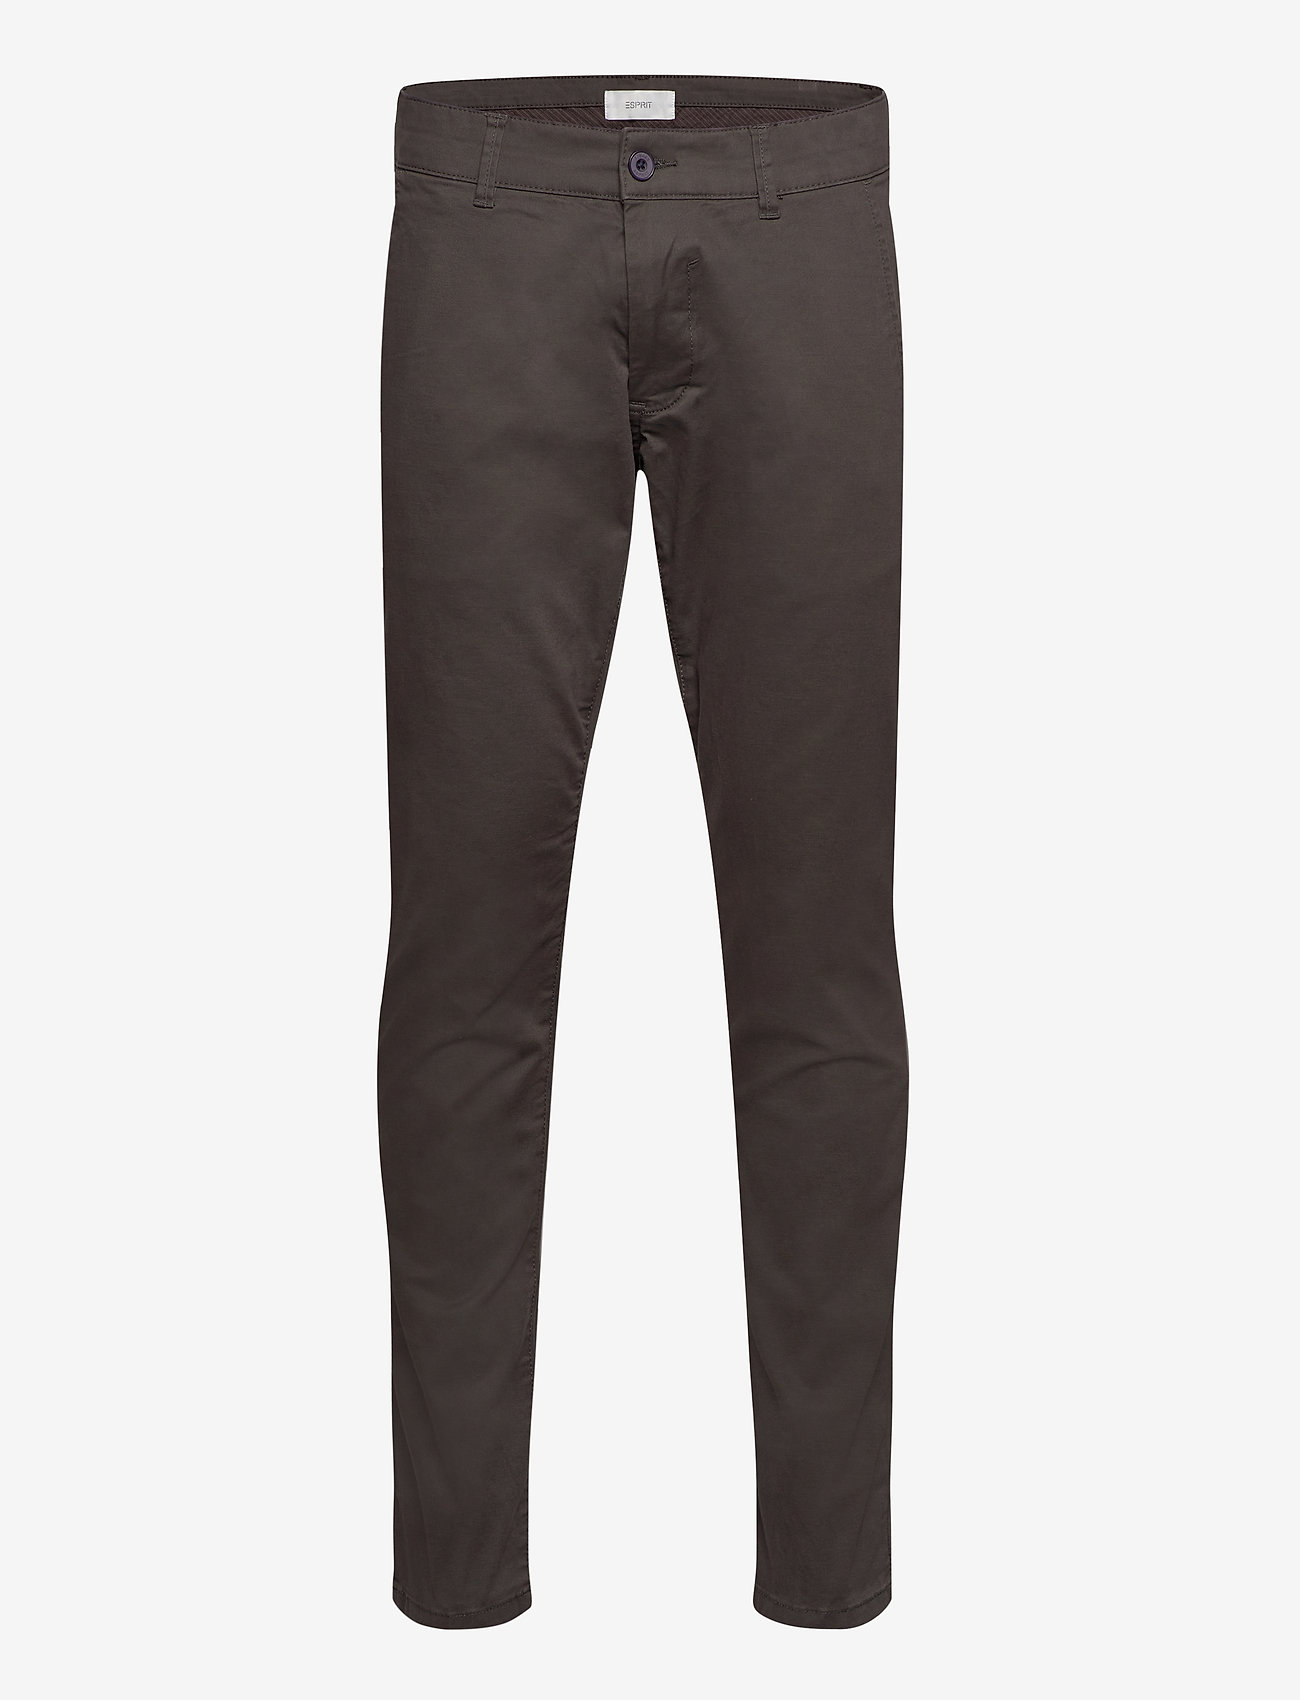 Esprit Casual - Pants woven - chinos - dark grey - 0